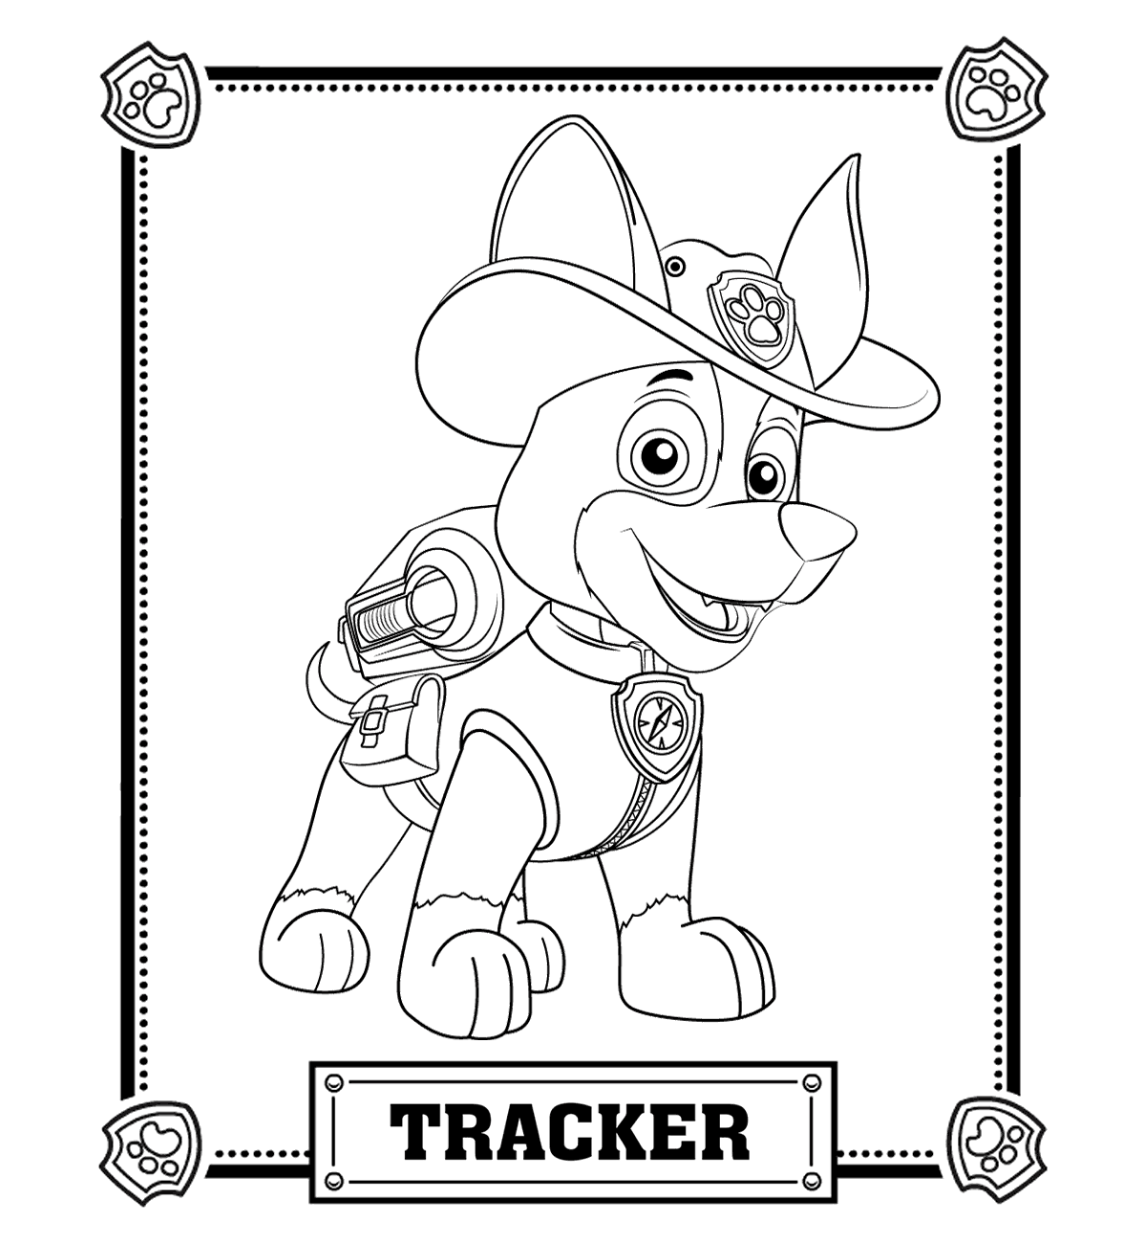 PAW Patrol Tracker Coloring Pages